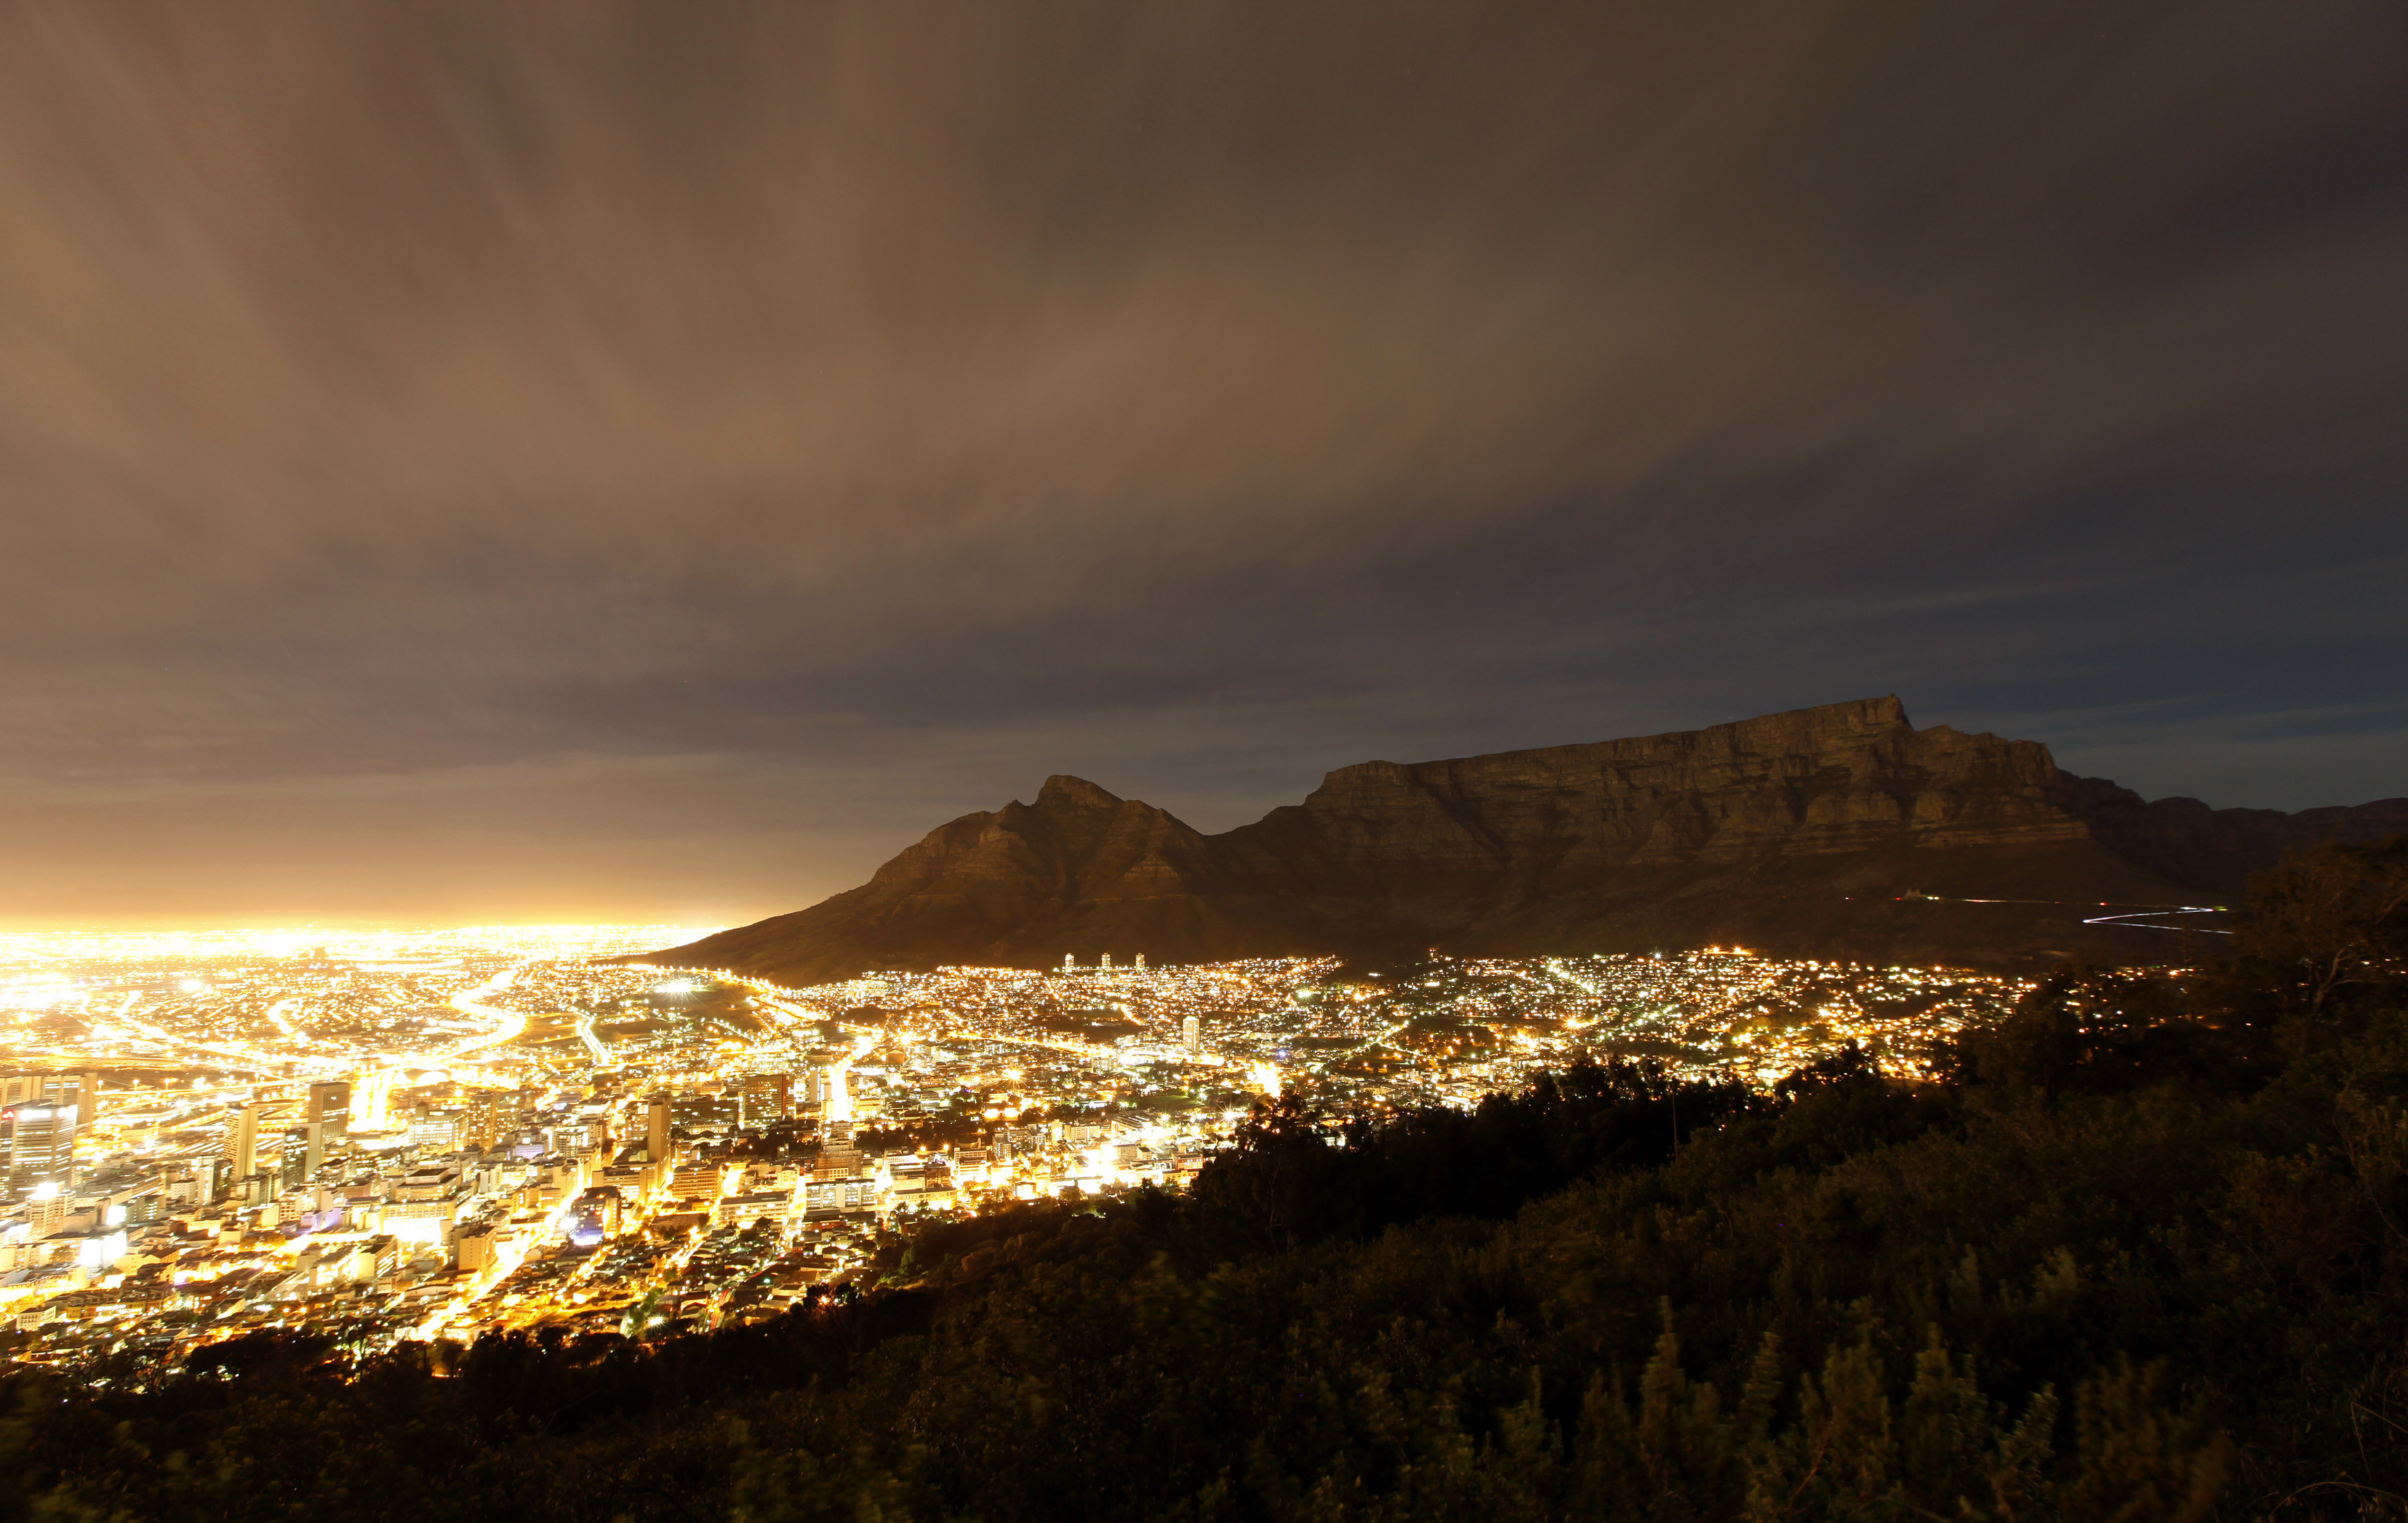 Cape Town lights up as dusk falls over the city's backdrop Table Mountain, November 2, 2009. Cape Town is one of nine South African cities hosting the 2010 Fifa Soccer World Cup.  REUTERS/Mike Hutchings (SOUTH AFRICA SPORT SOCCER IMAGES OF THE DAY) FOR BEST QUALITY IMAGE ALSO SEE: GF2EA5L0PGN01 - GM1E5B30KJ201